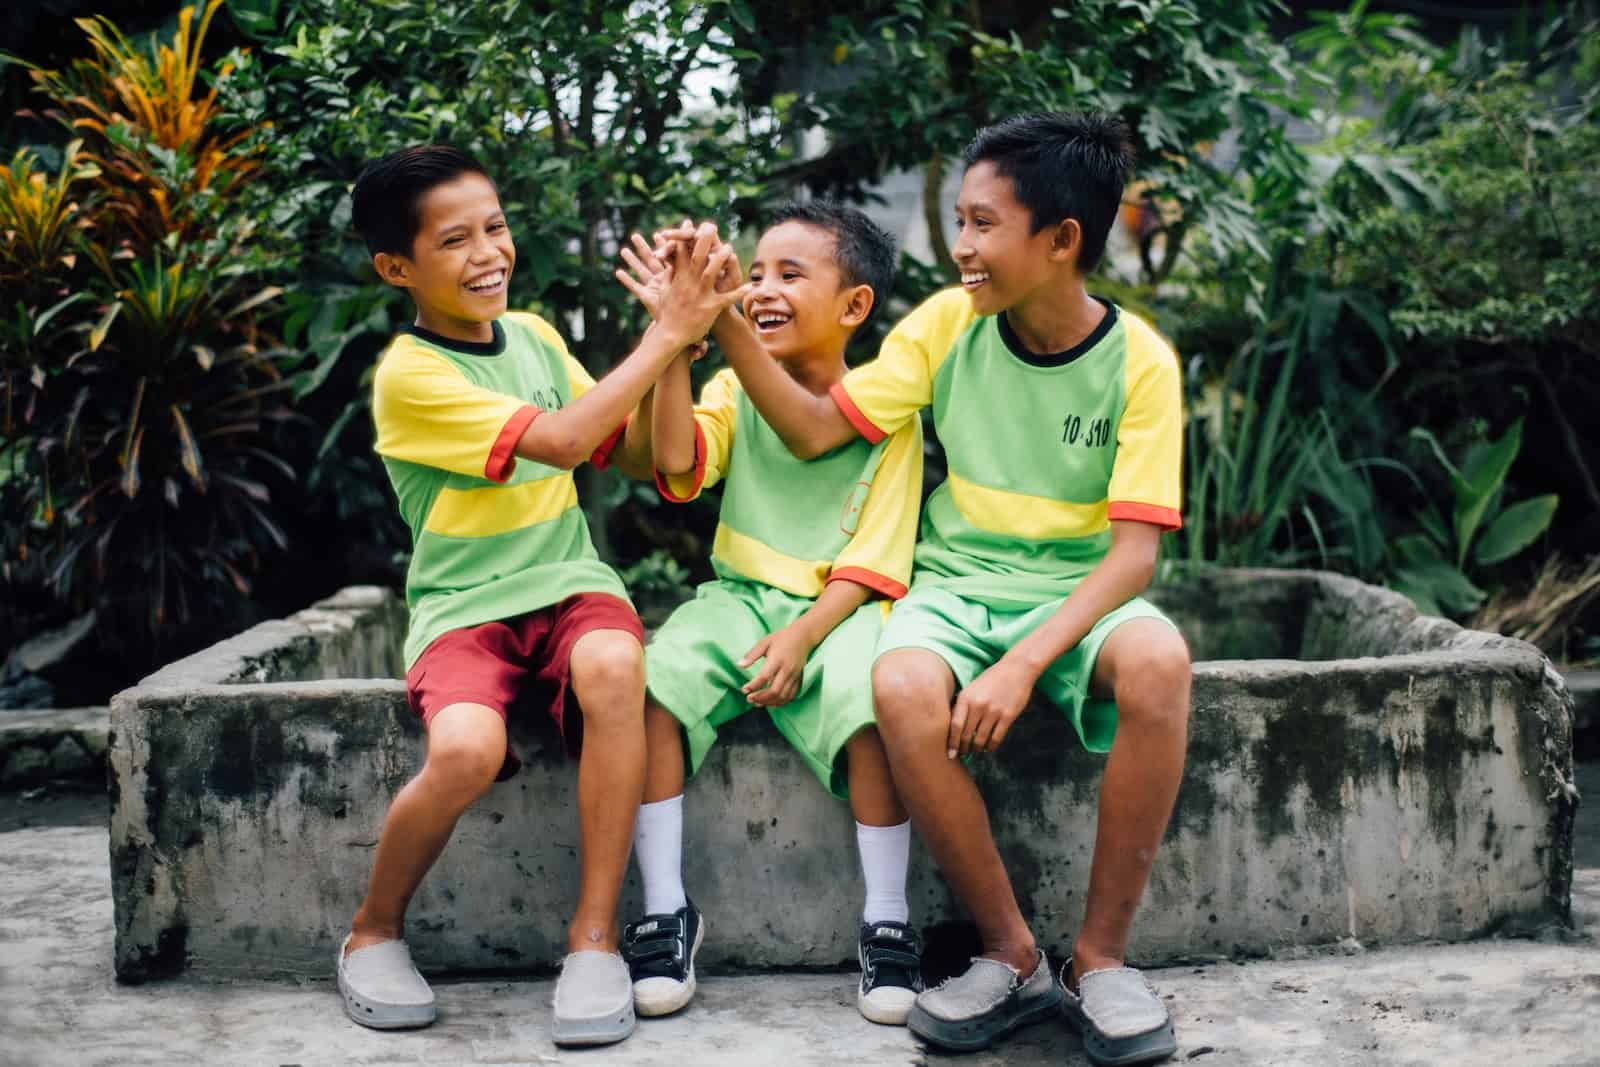 International Day of Friendship: Three boys sit outside wearing green and yellow sports uniforms, giving each other high fives.